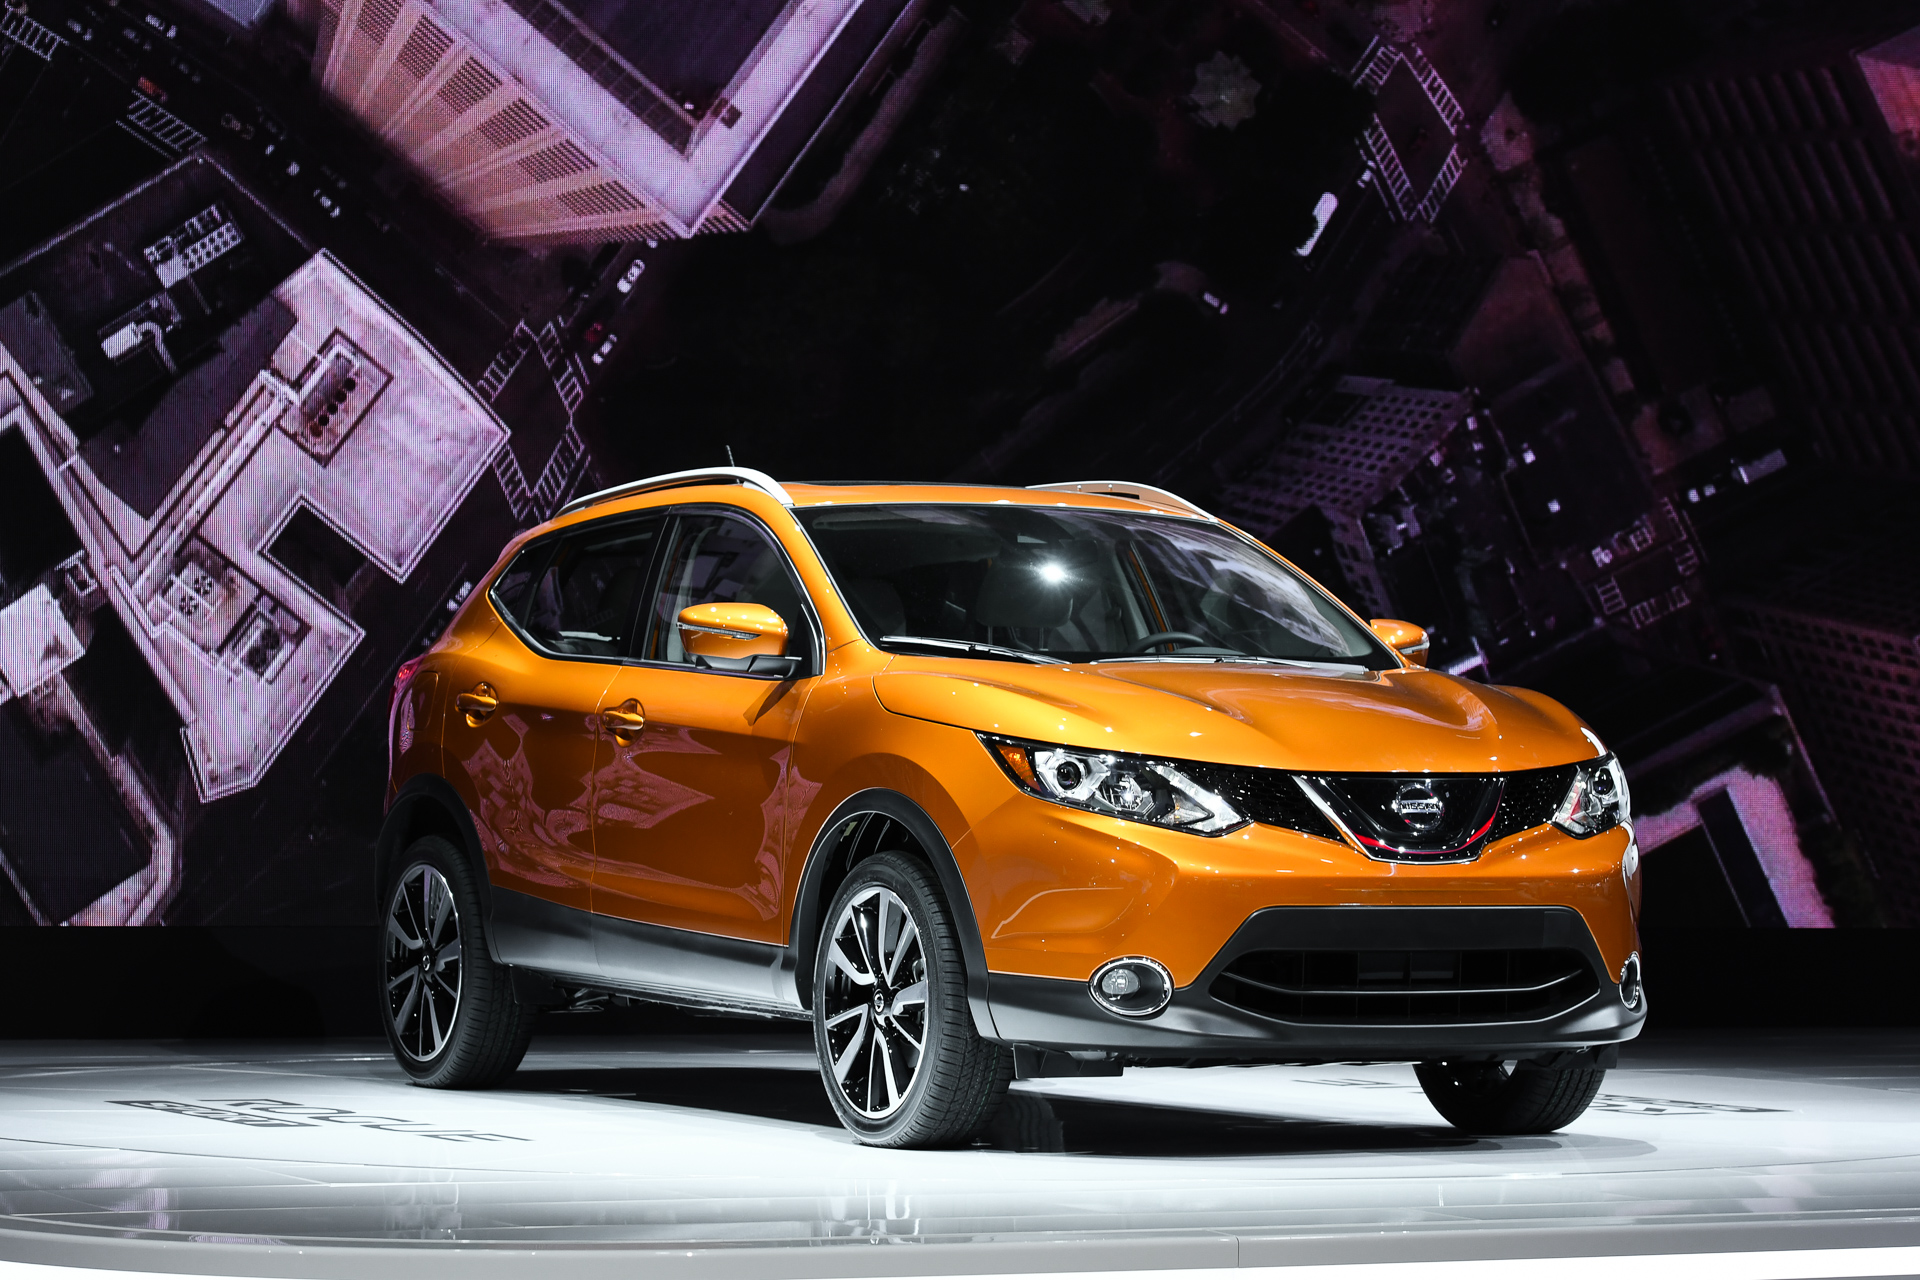 Used Minivans For Sale >> Nissan Rogue Sport video preview